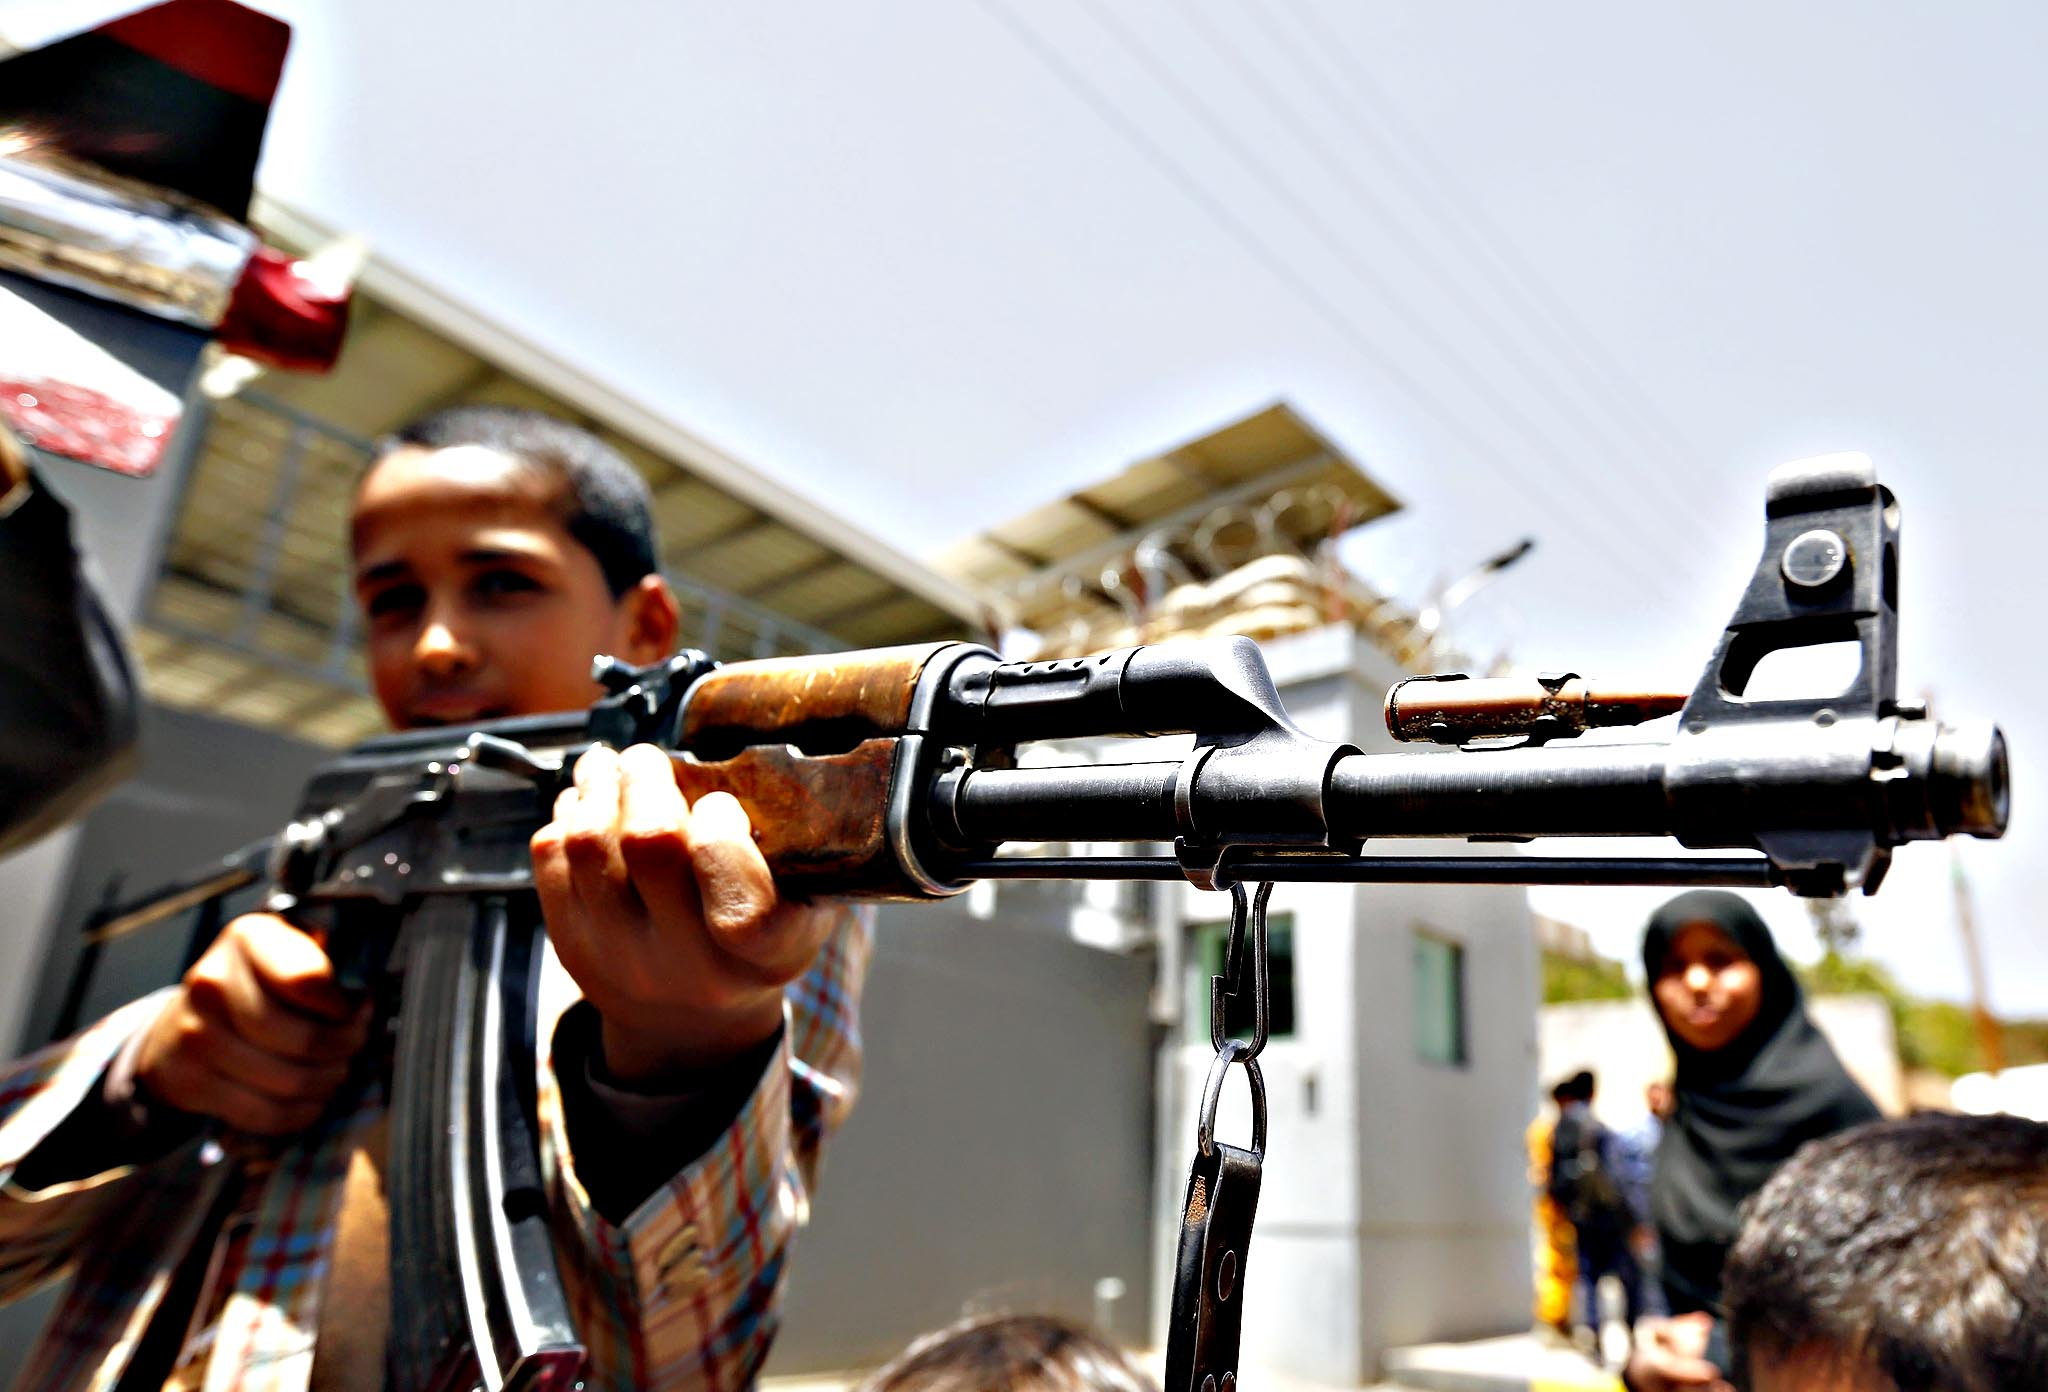 A young Yemeni poses with a gun during a protest against Saudi-led airstrikes on Yemen, outside the Sana a-based UN offices in Sana a, Yemen, 13 April 2015. According to reports, Yemeni students rallied outside the Sana a-based UN offices, calling for an end of the Saudi-led military Decisive Storm operation, accusing the Saudi-led coalition of attacking schools and civilian houses throughout Yemen in their bid the degrade the capabilities of the Houthis and their allies.